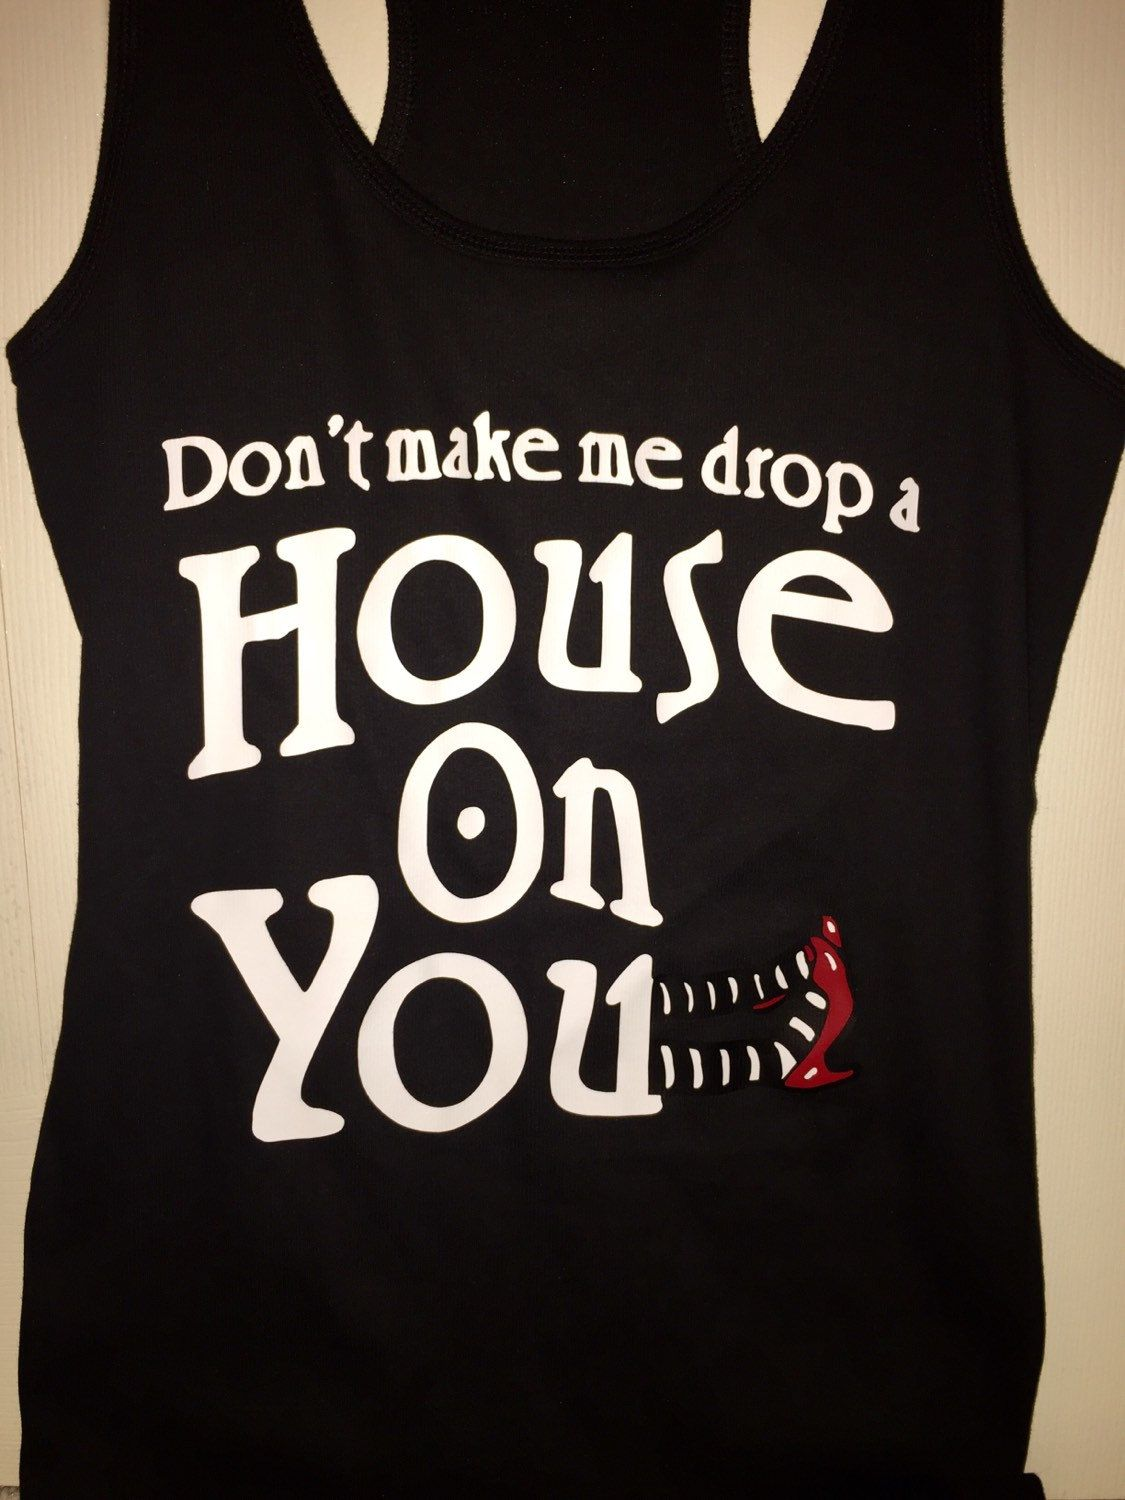 "22.00 dont make me drop a house on you ""wizard of oz"" themed tshirt or tank top by Jkdezign on Etsy"